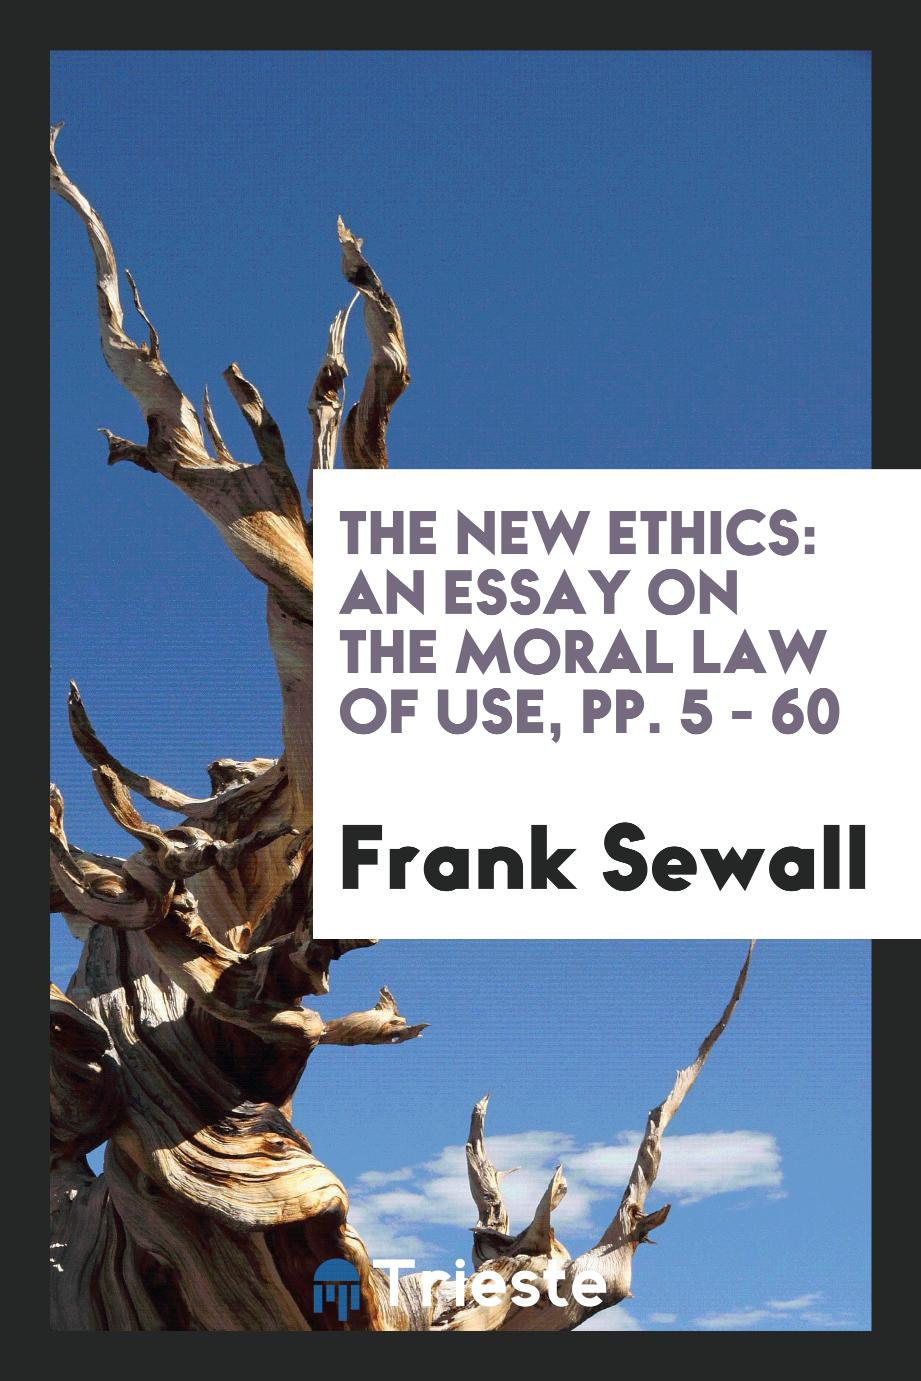 The New Ethics: An Essay on the Moral Law of Use, pp. 5 - 60